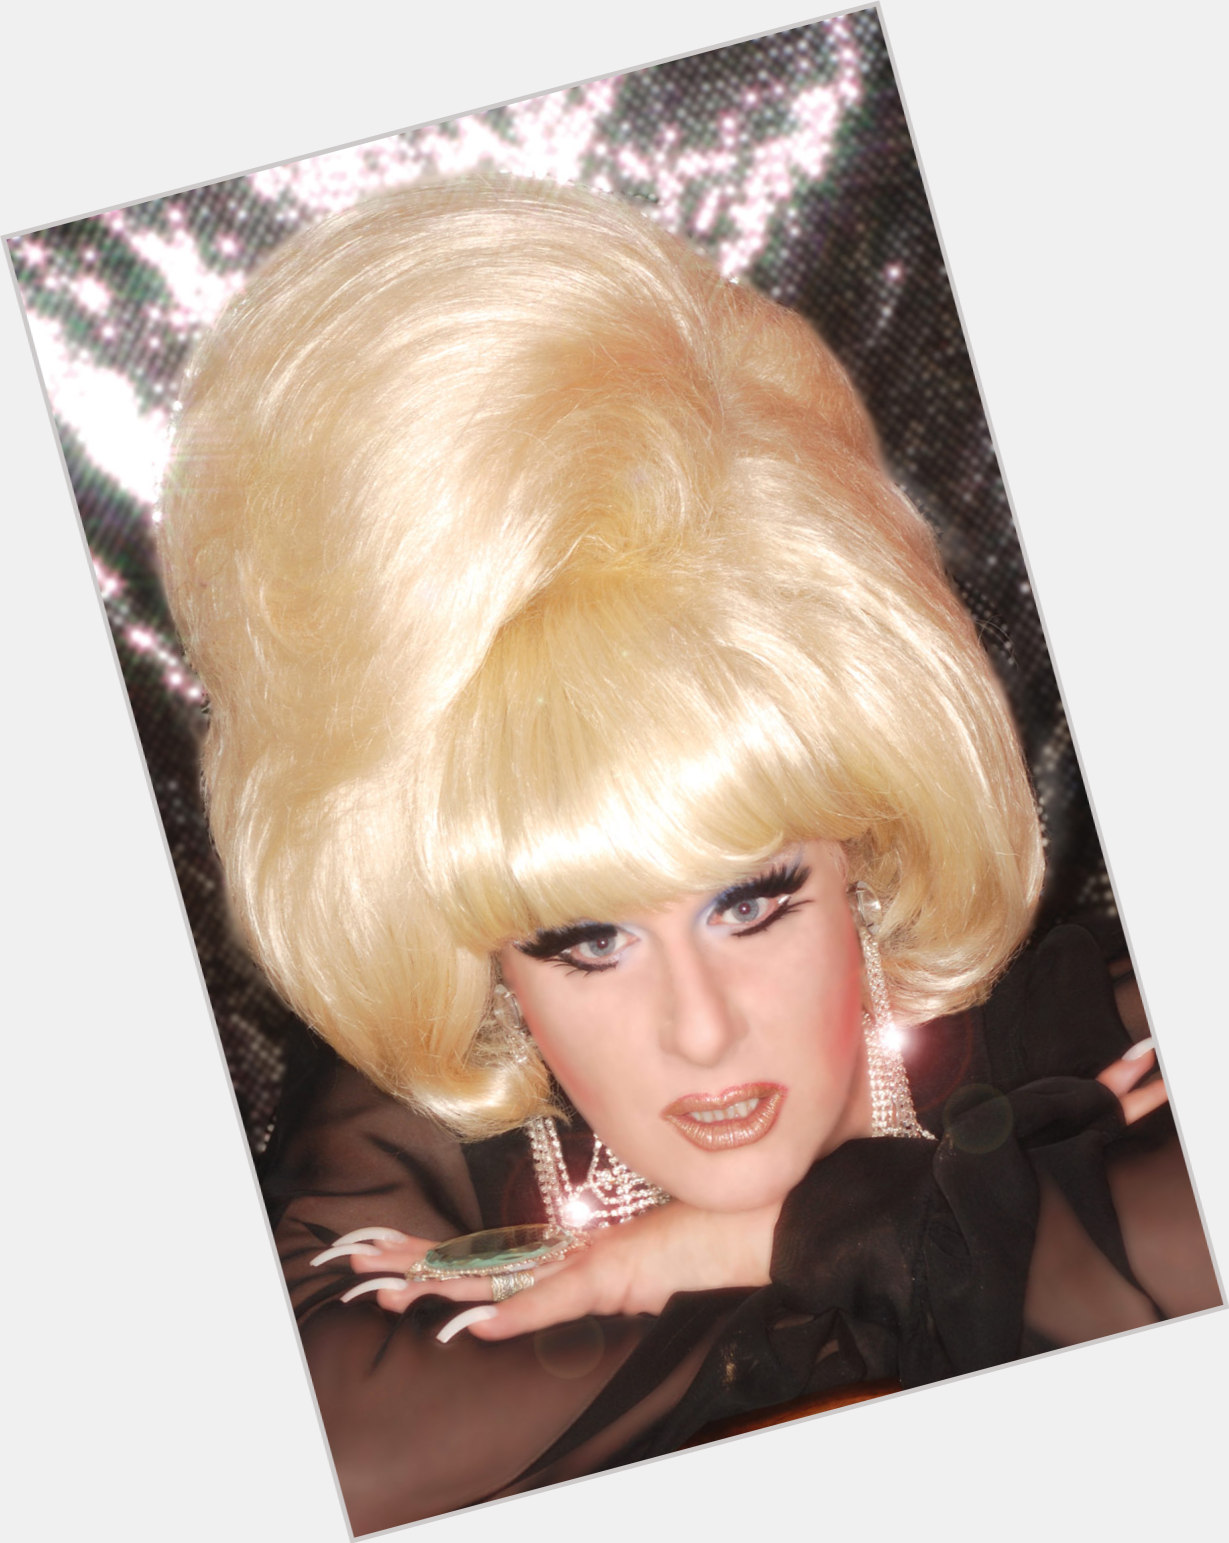 Lady Bunny new pic 1